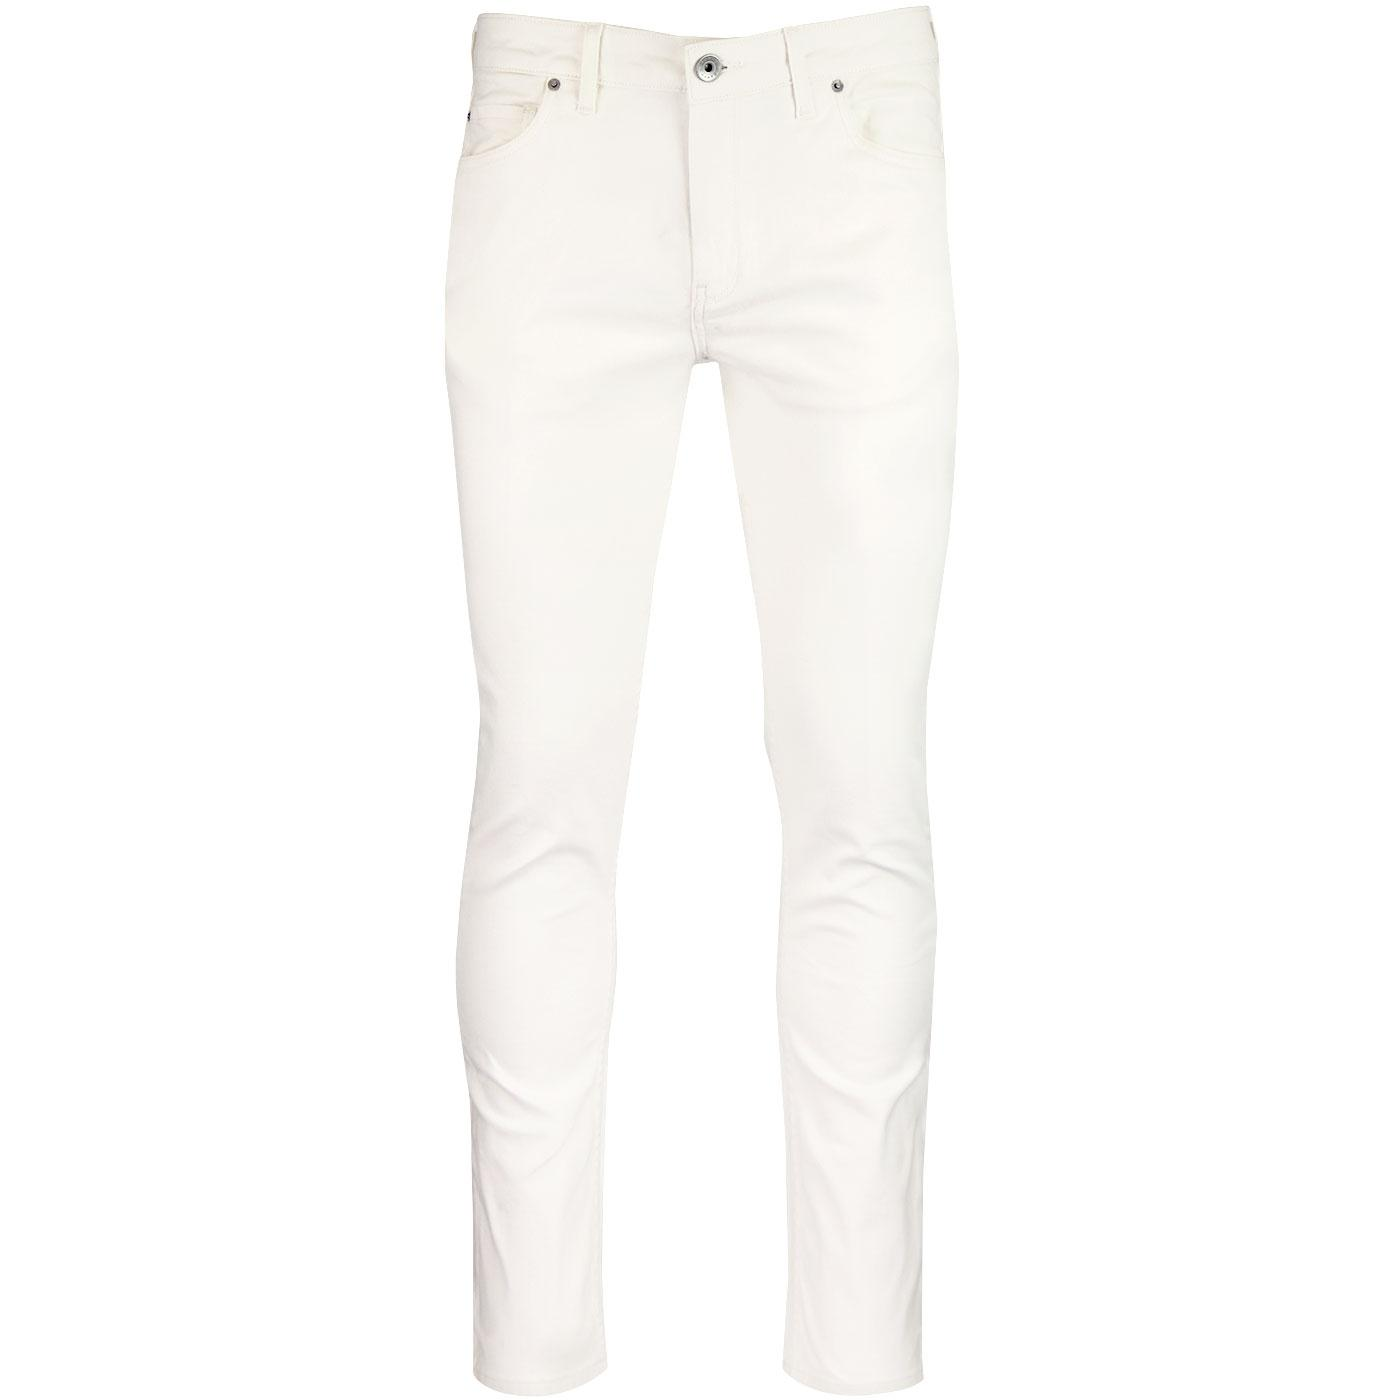 Drake FARAH Retro Mod Slim Twill Trousers (Ecru)